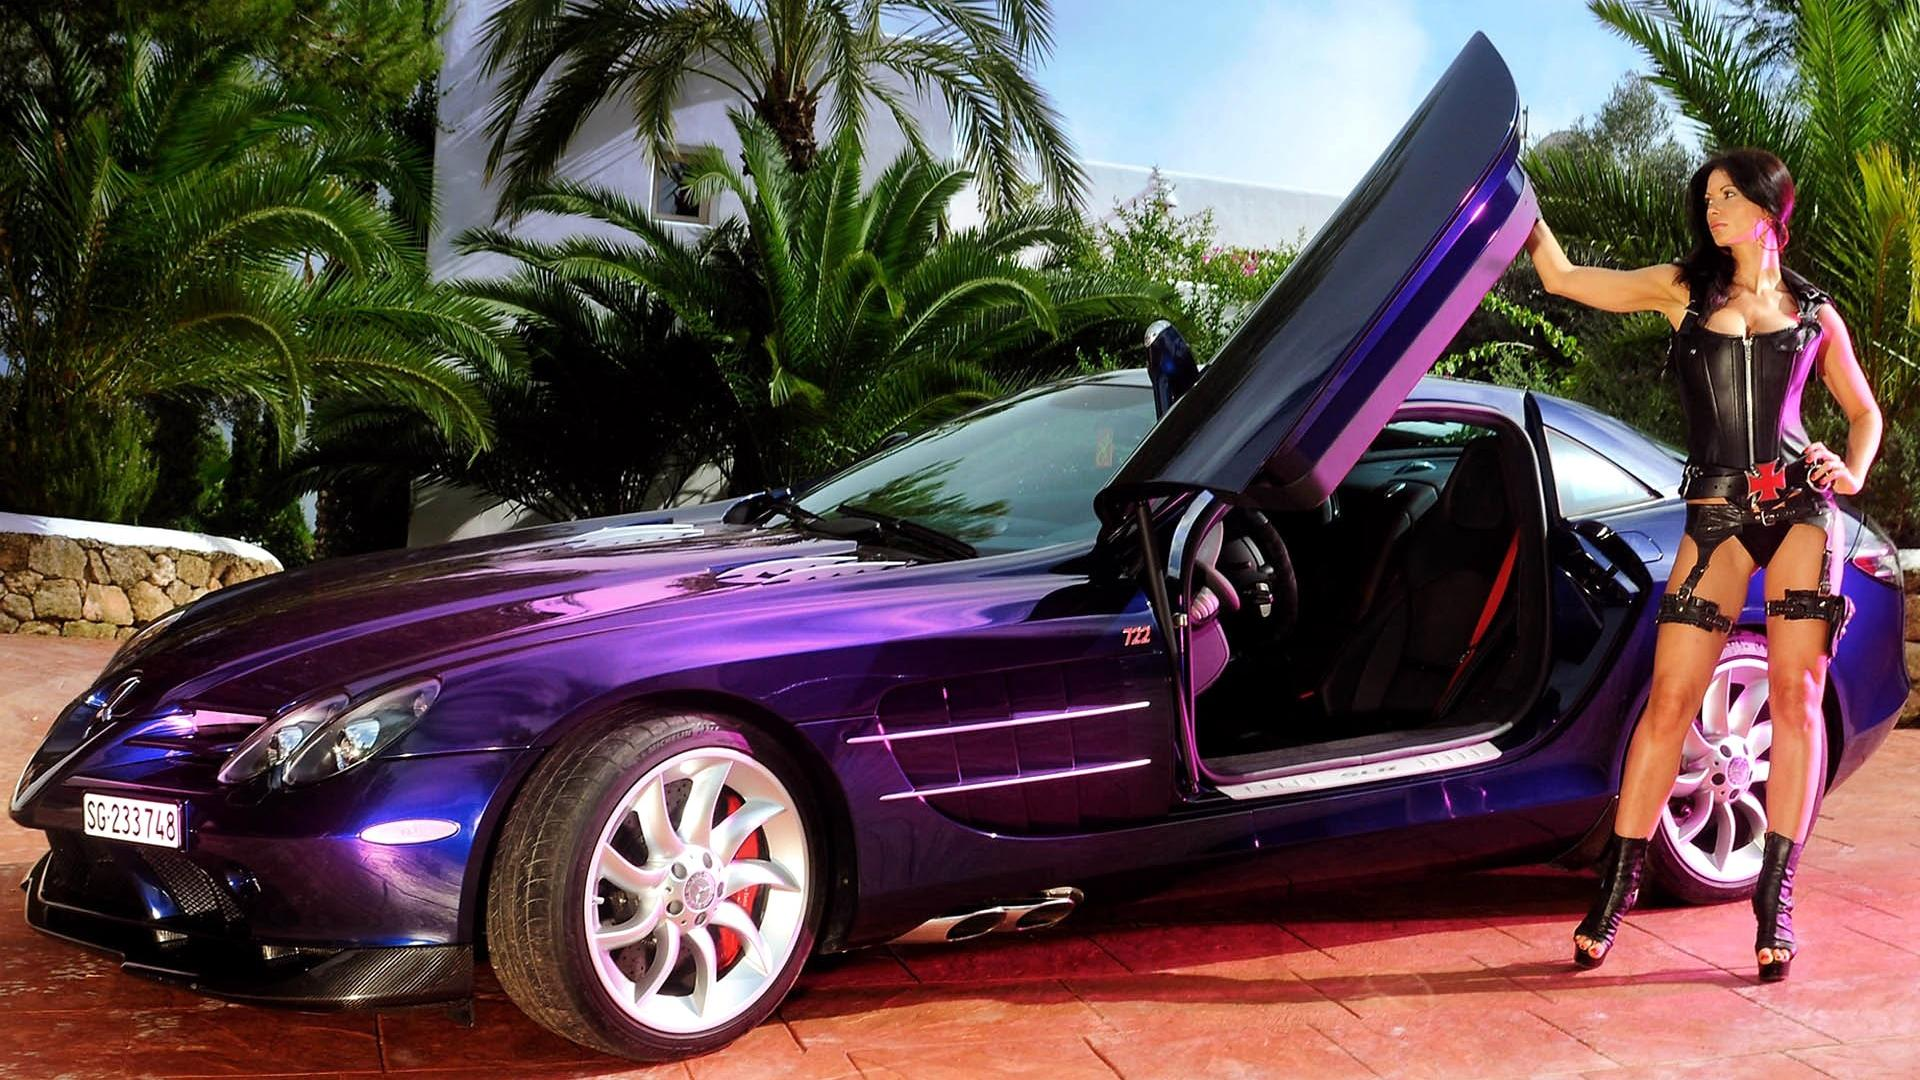 Hot Stylish Cars Wallpapers Part II 1920x1080